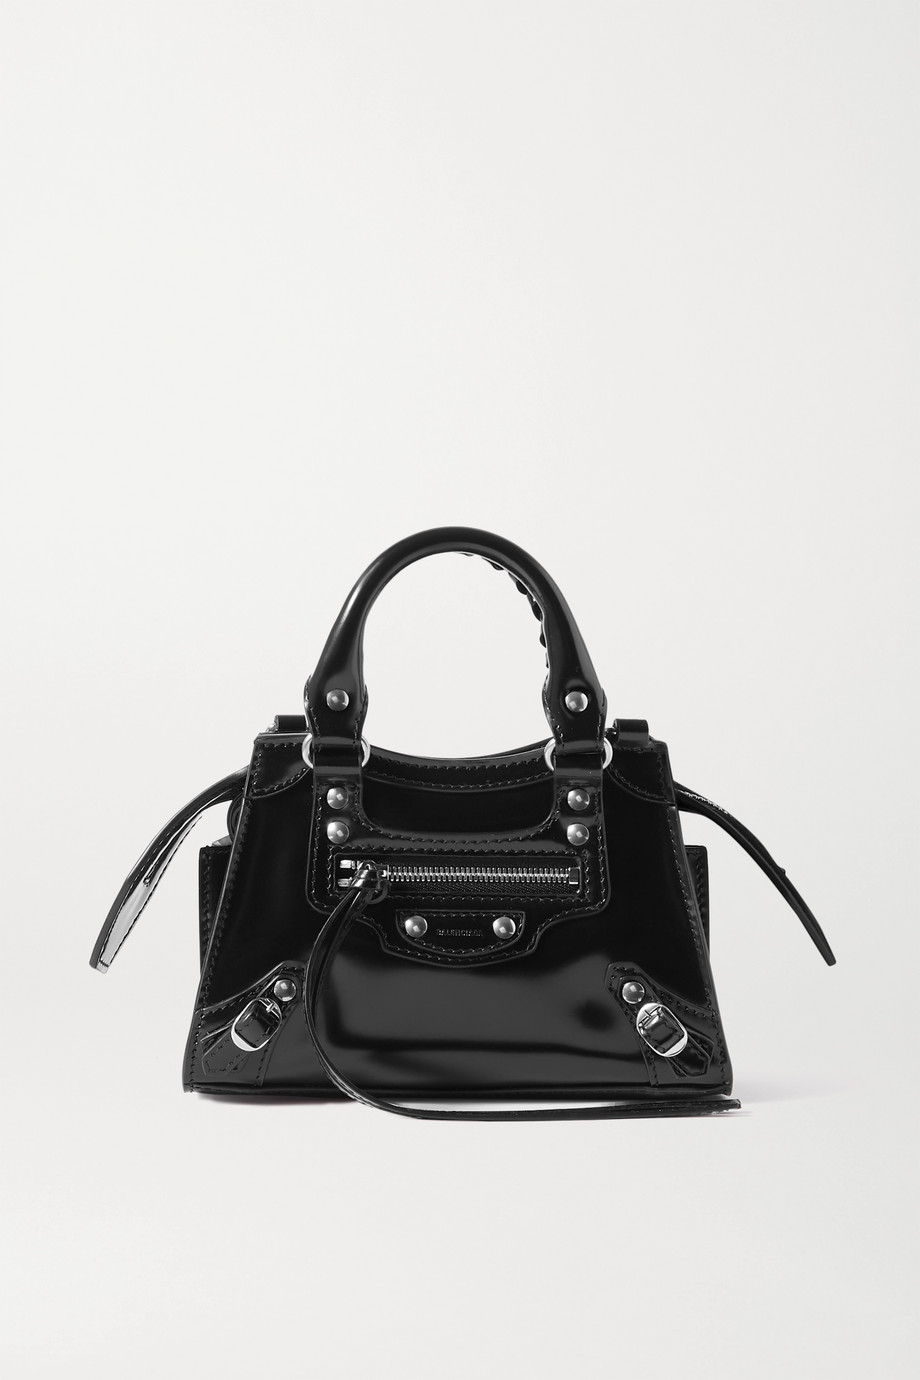 Balenciaga Neo Classic City nano glossed-leather tote